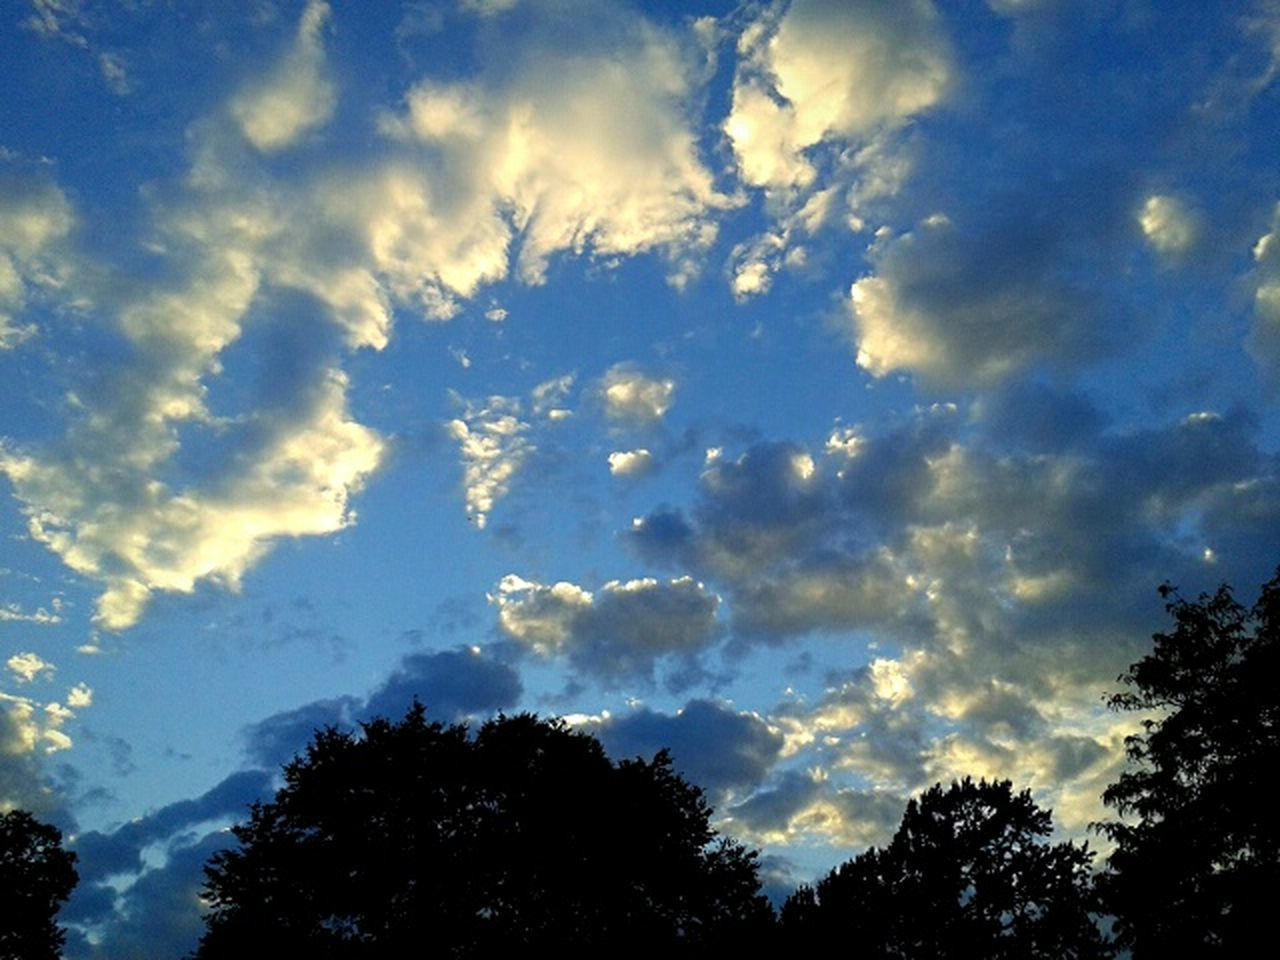 low angle view, beauty in nature, tree, nature, sky, silhouette, cloud - sky, scenics, no people, tranquility, tranquil scene, majestic, outdoors, day, growth